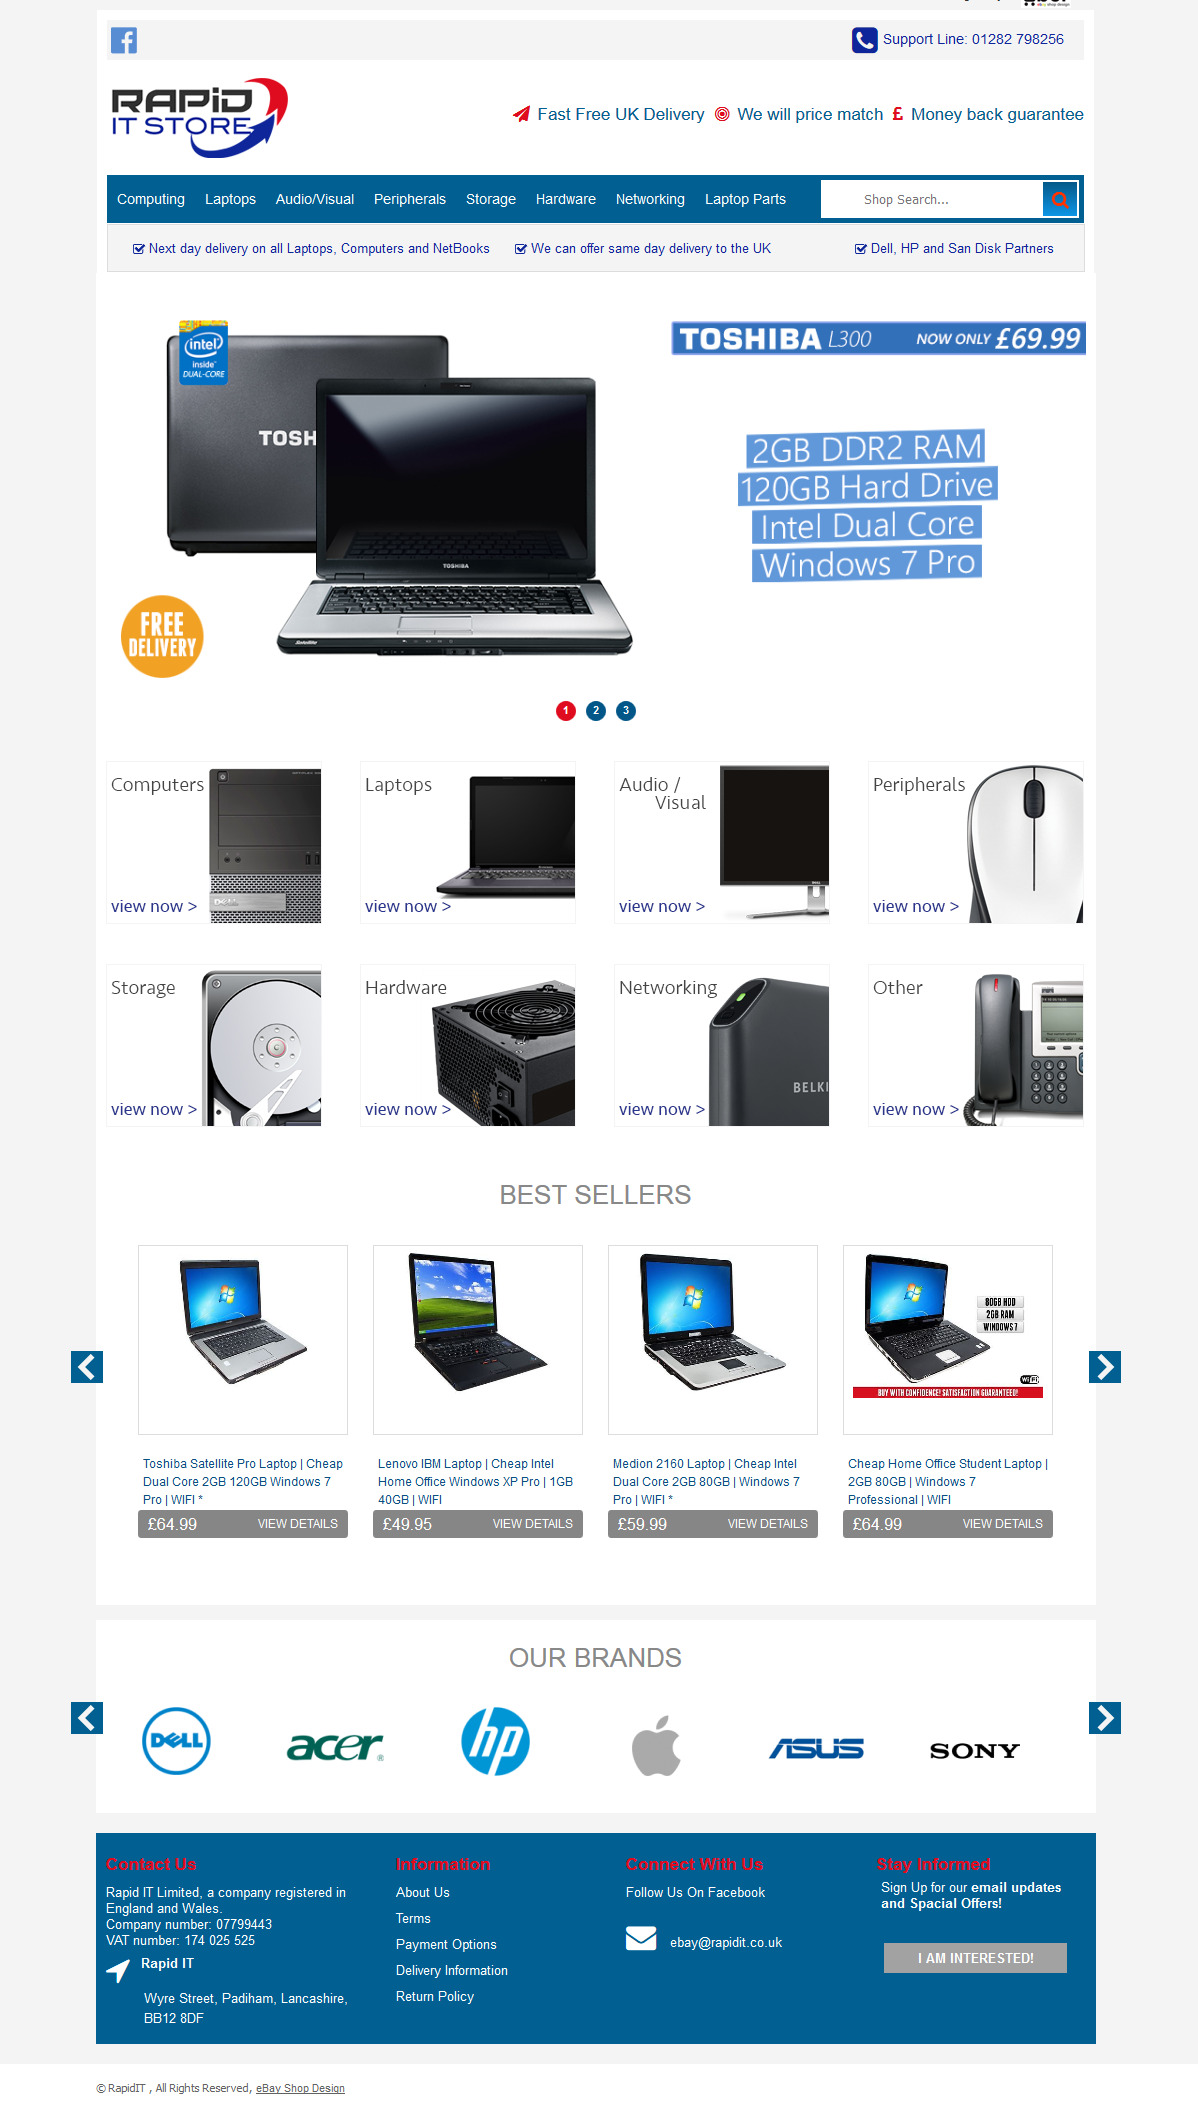 Rapid IT store storefront design